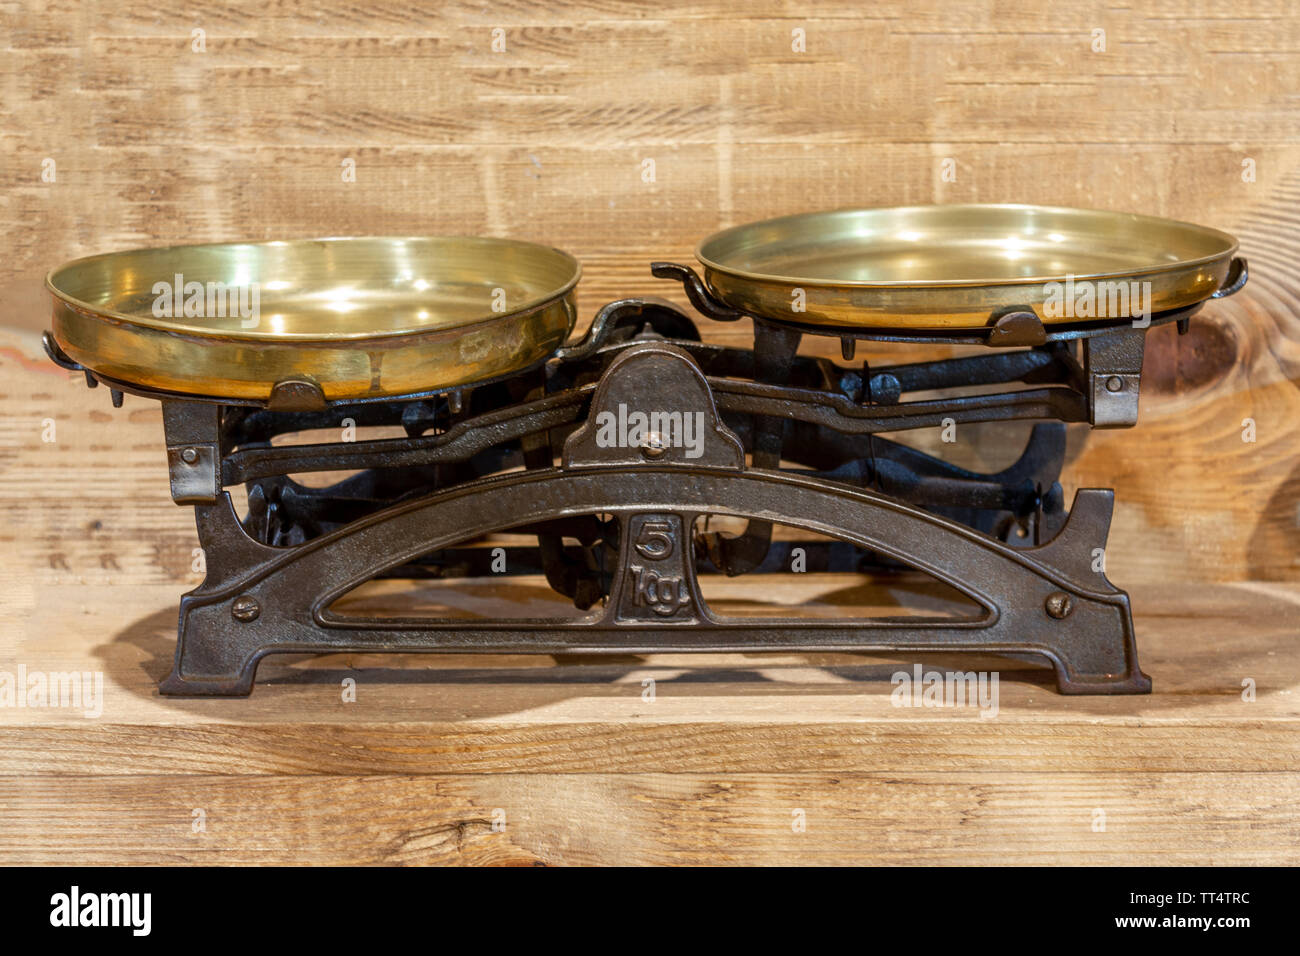 Old antique iron scales on wooden background - Stock Image